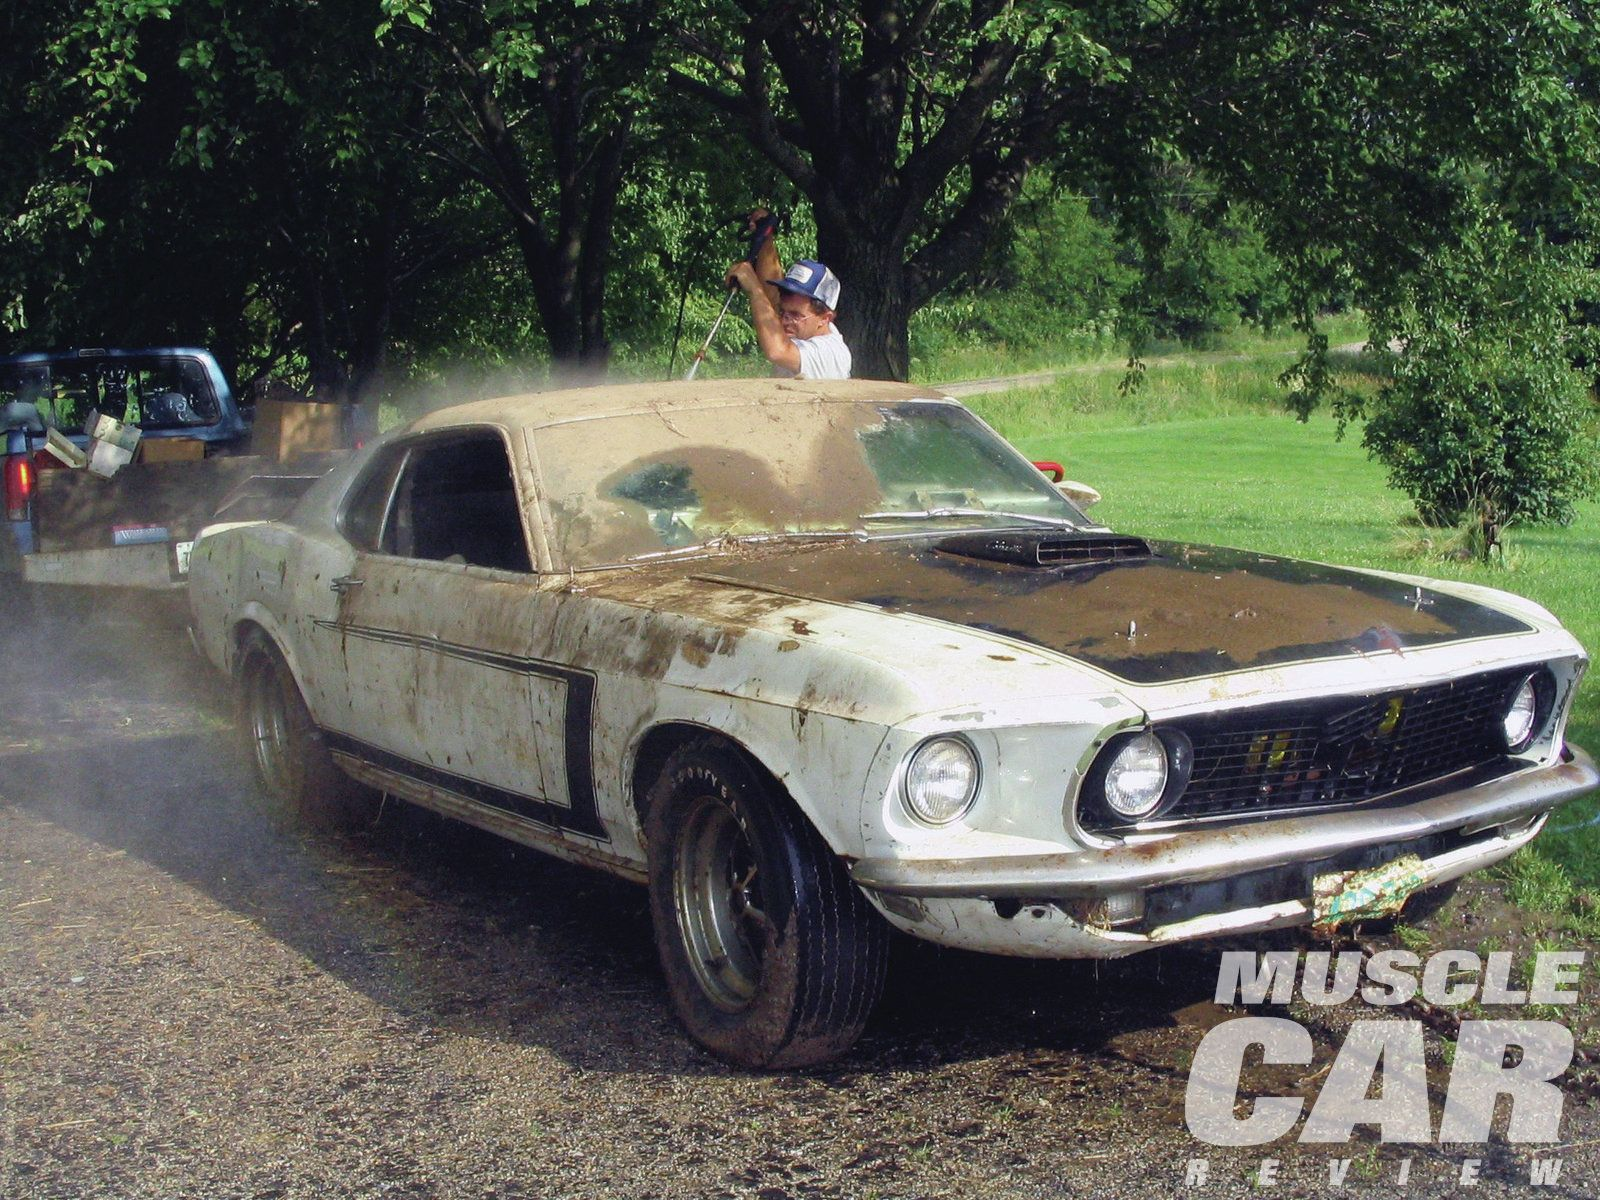 1969 Ford Mustang - Long-Lost Boss | Ford mustang, Mustang and Ford